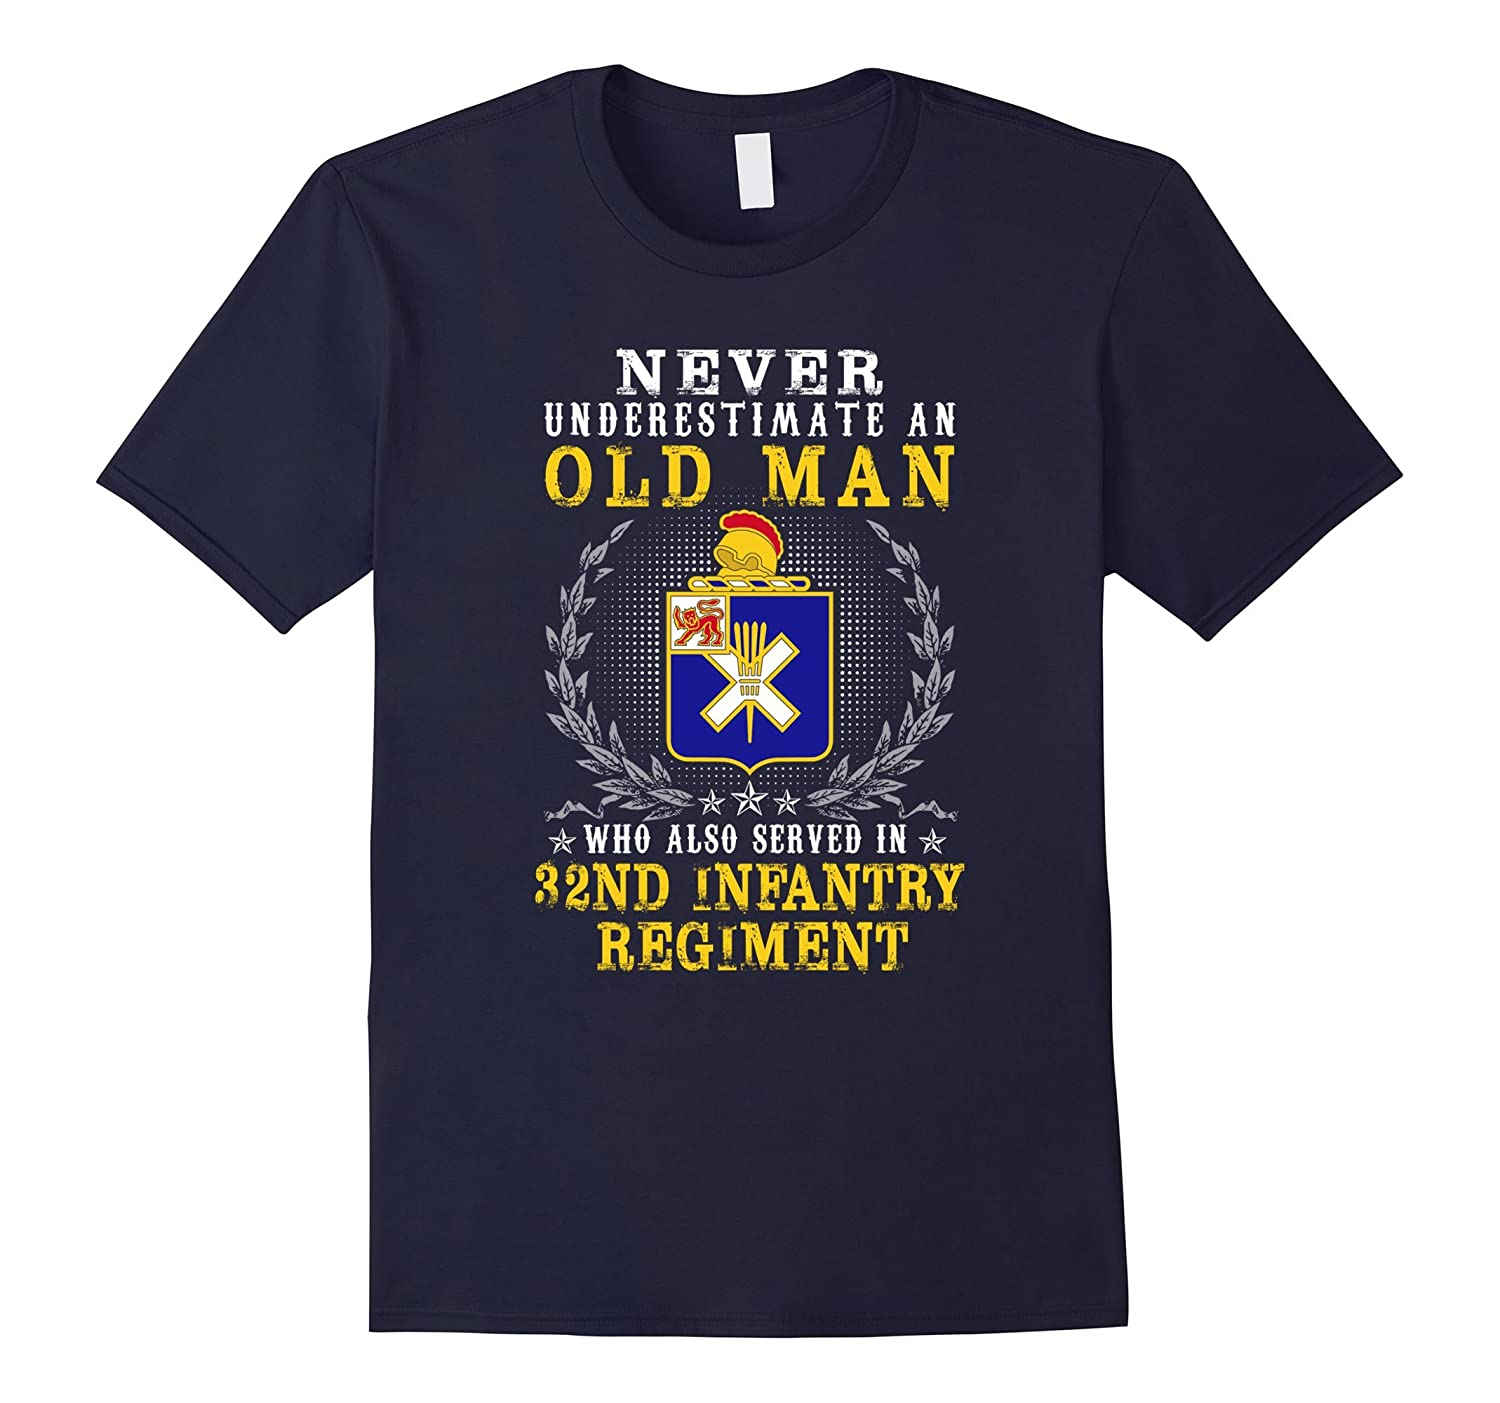 32nd infantry regiment tshirt, never underestimate an old ma-Art